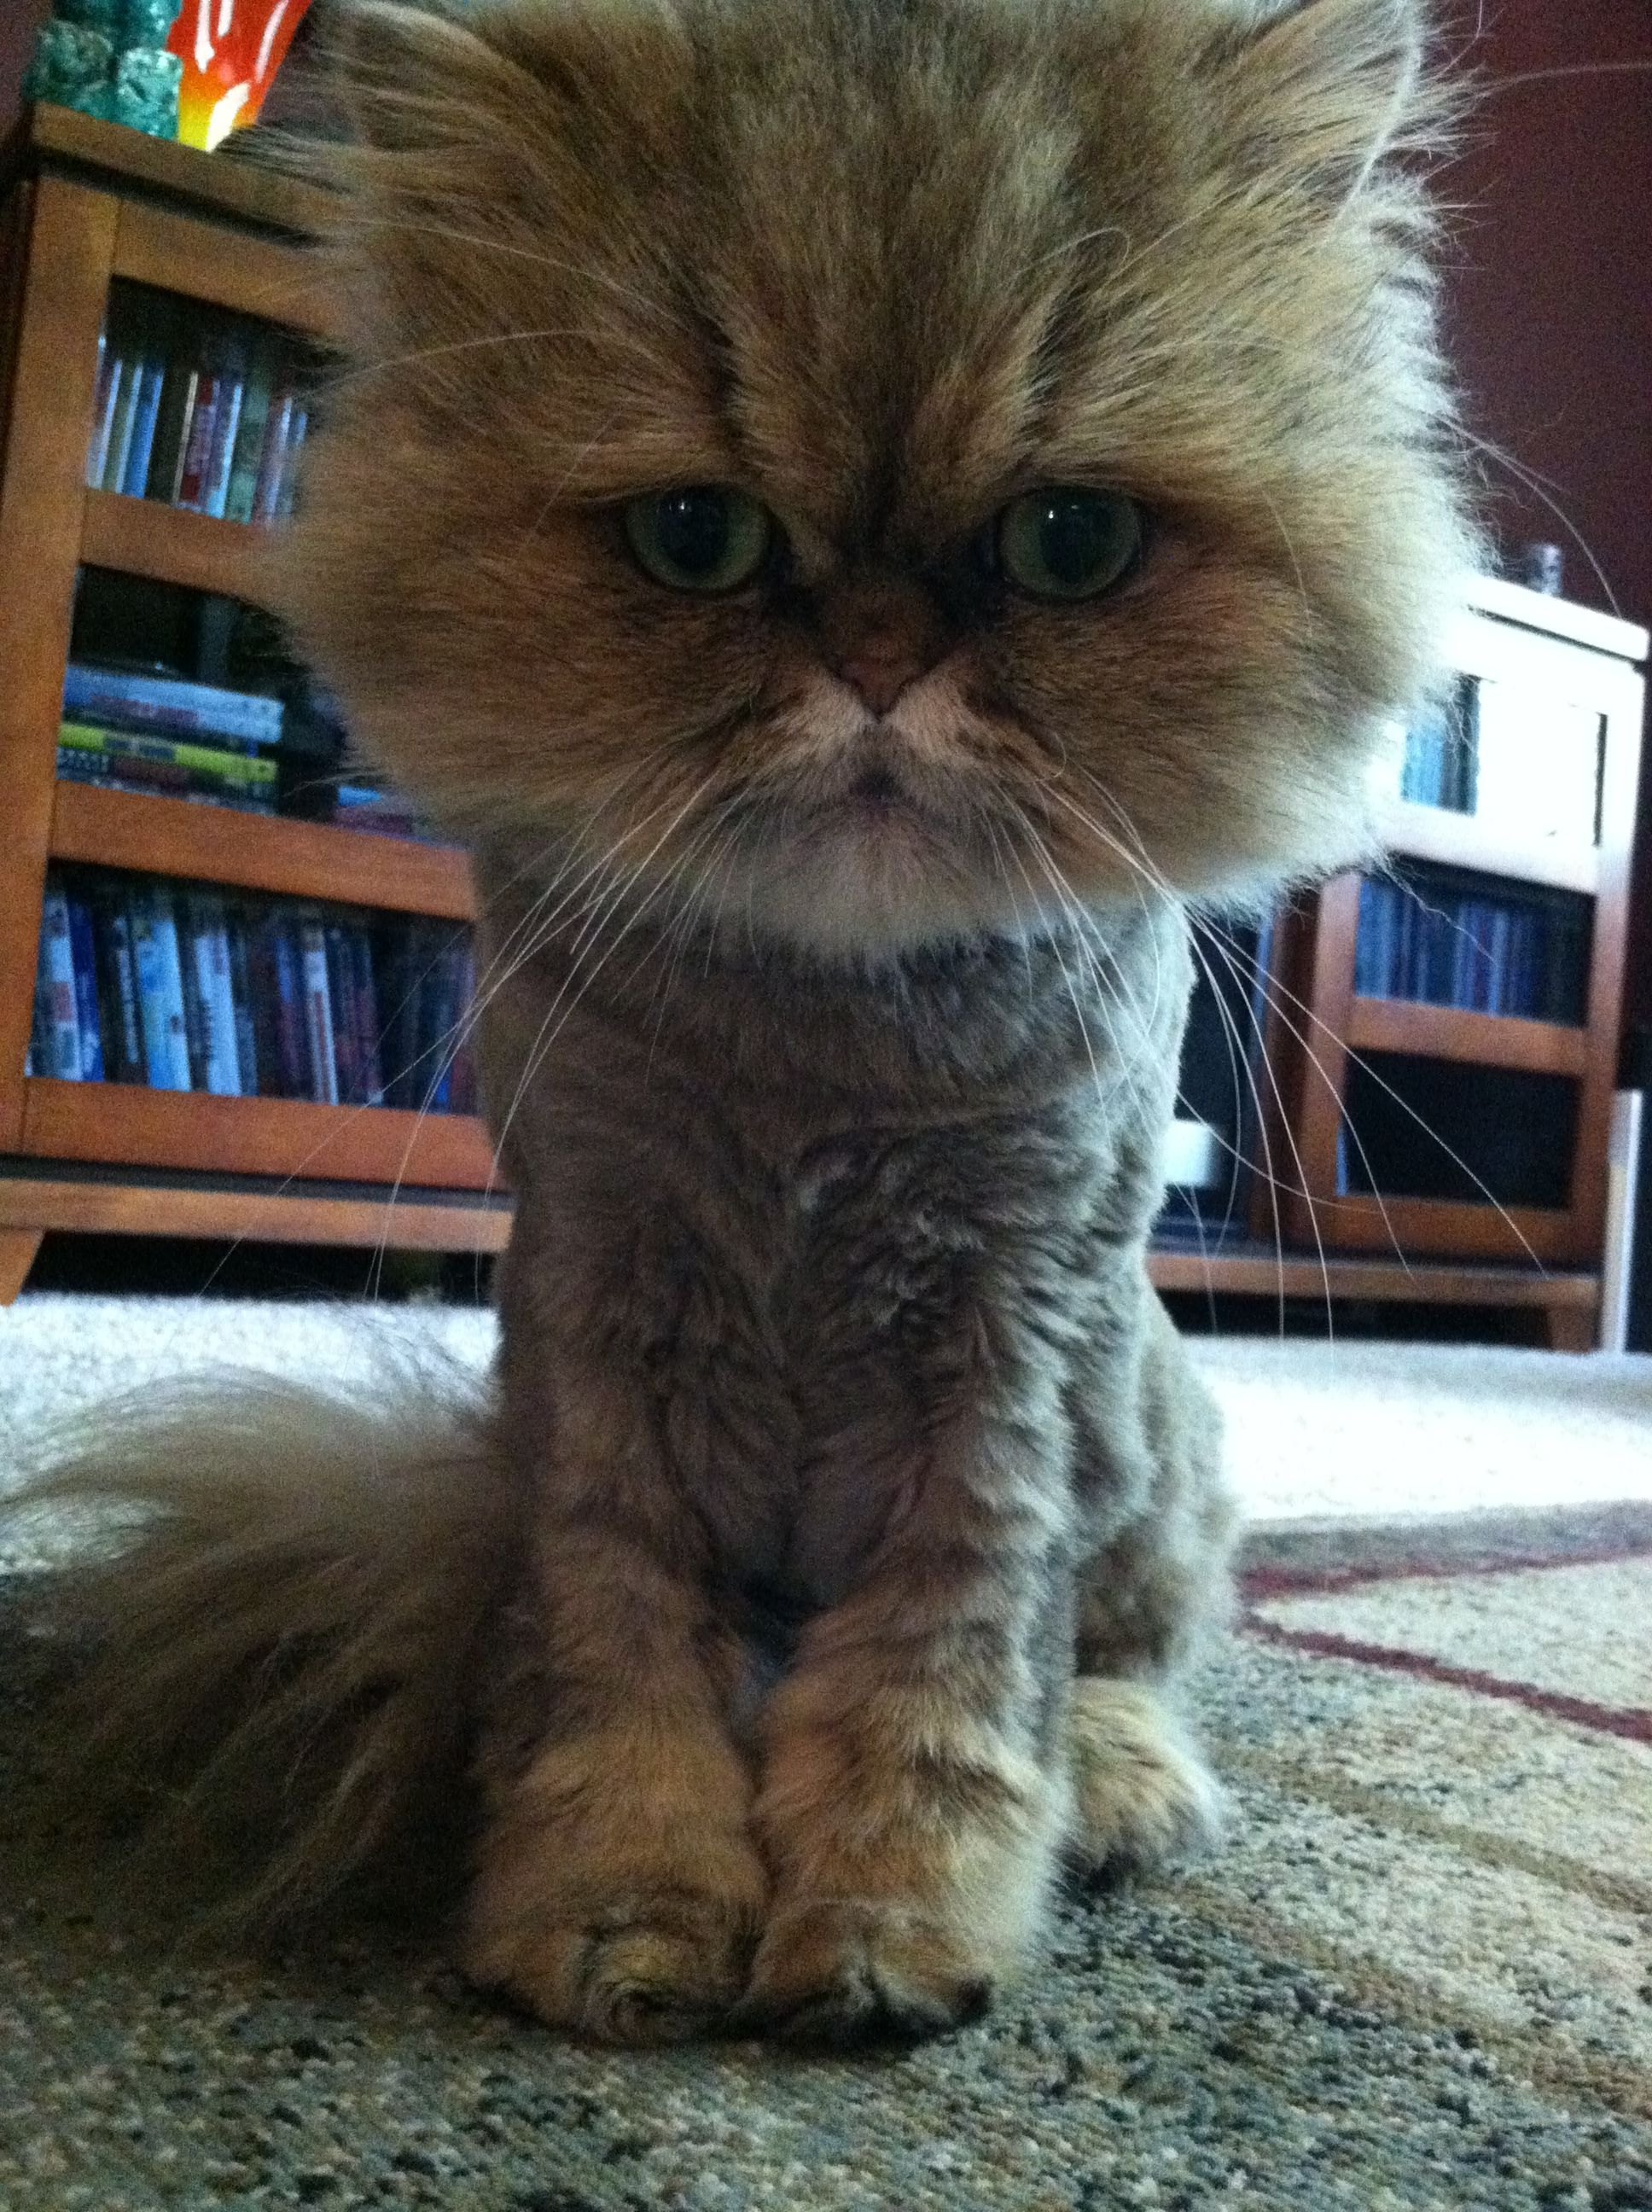 Persian Haircuts : persian, haircuts, Teacup, Persian, Fiona, Haircut!, #persiancatgrooming, #Lioncut, #catgrooming, #longhairedcat, #caturday, #pets, Cats,, Adoption